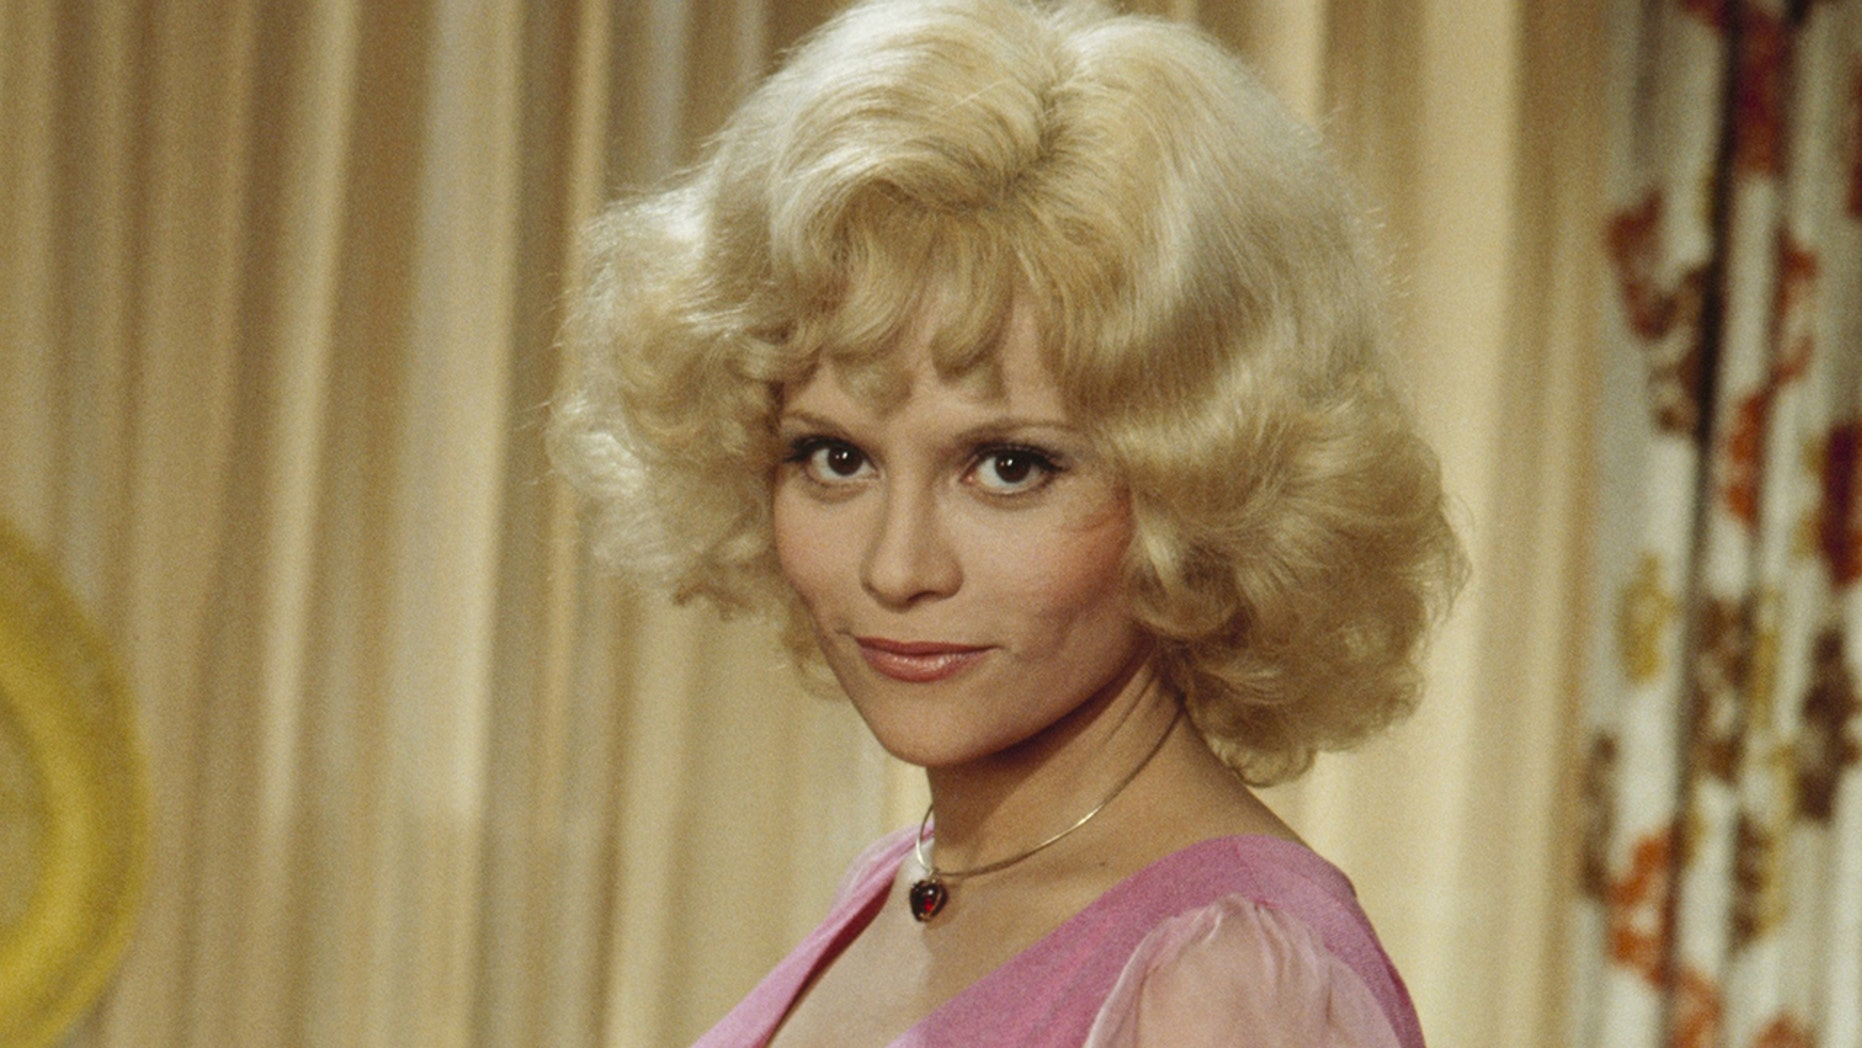 Actress Louisa Moritz, & # 39; Love American Style & # 39; died at the age of 72.